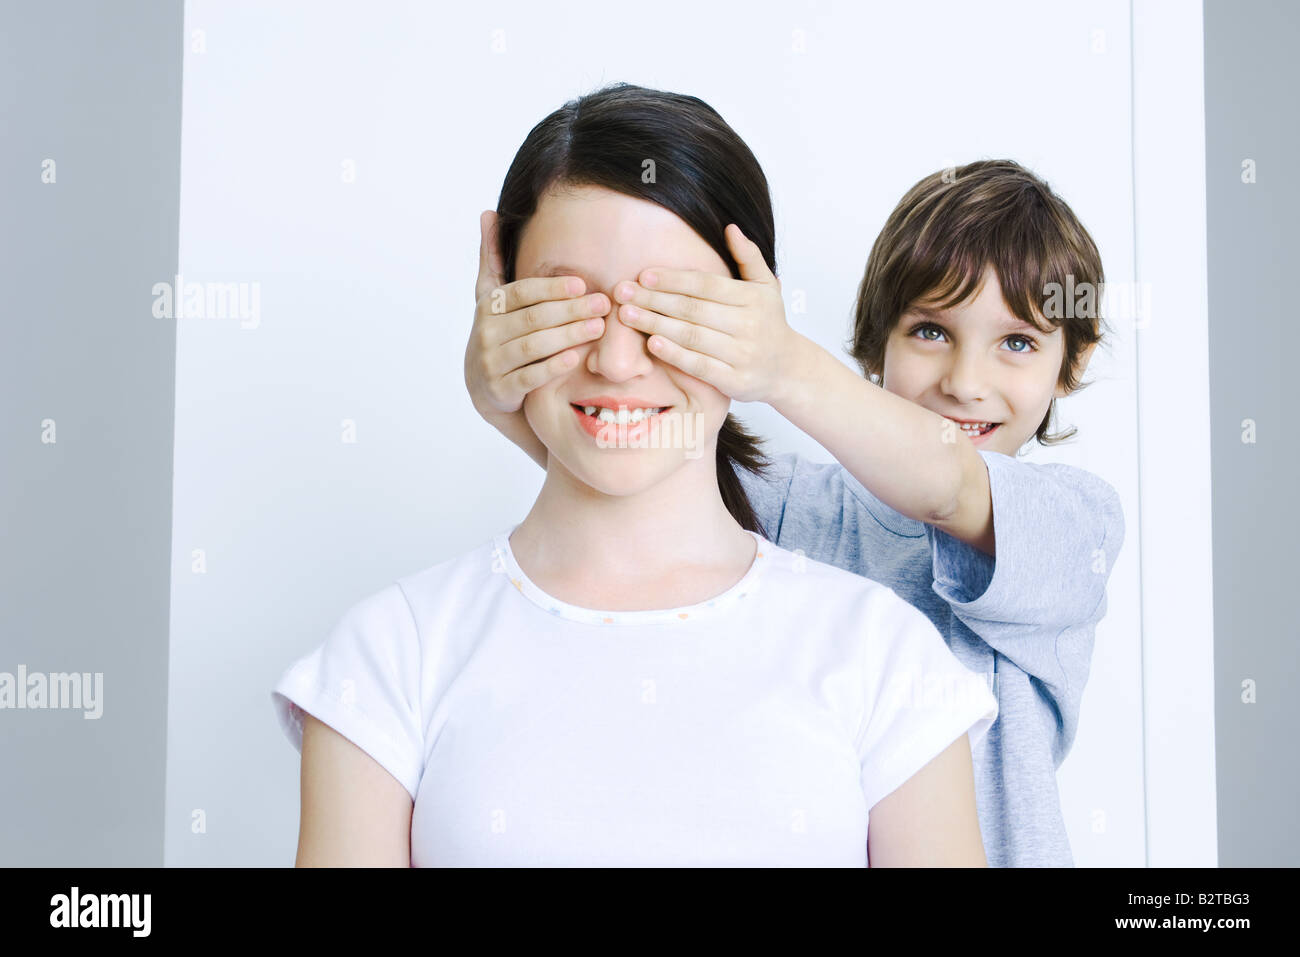 Brother covering his sisters eyes with his hands, smiling - Stock Image